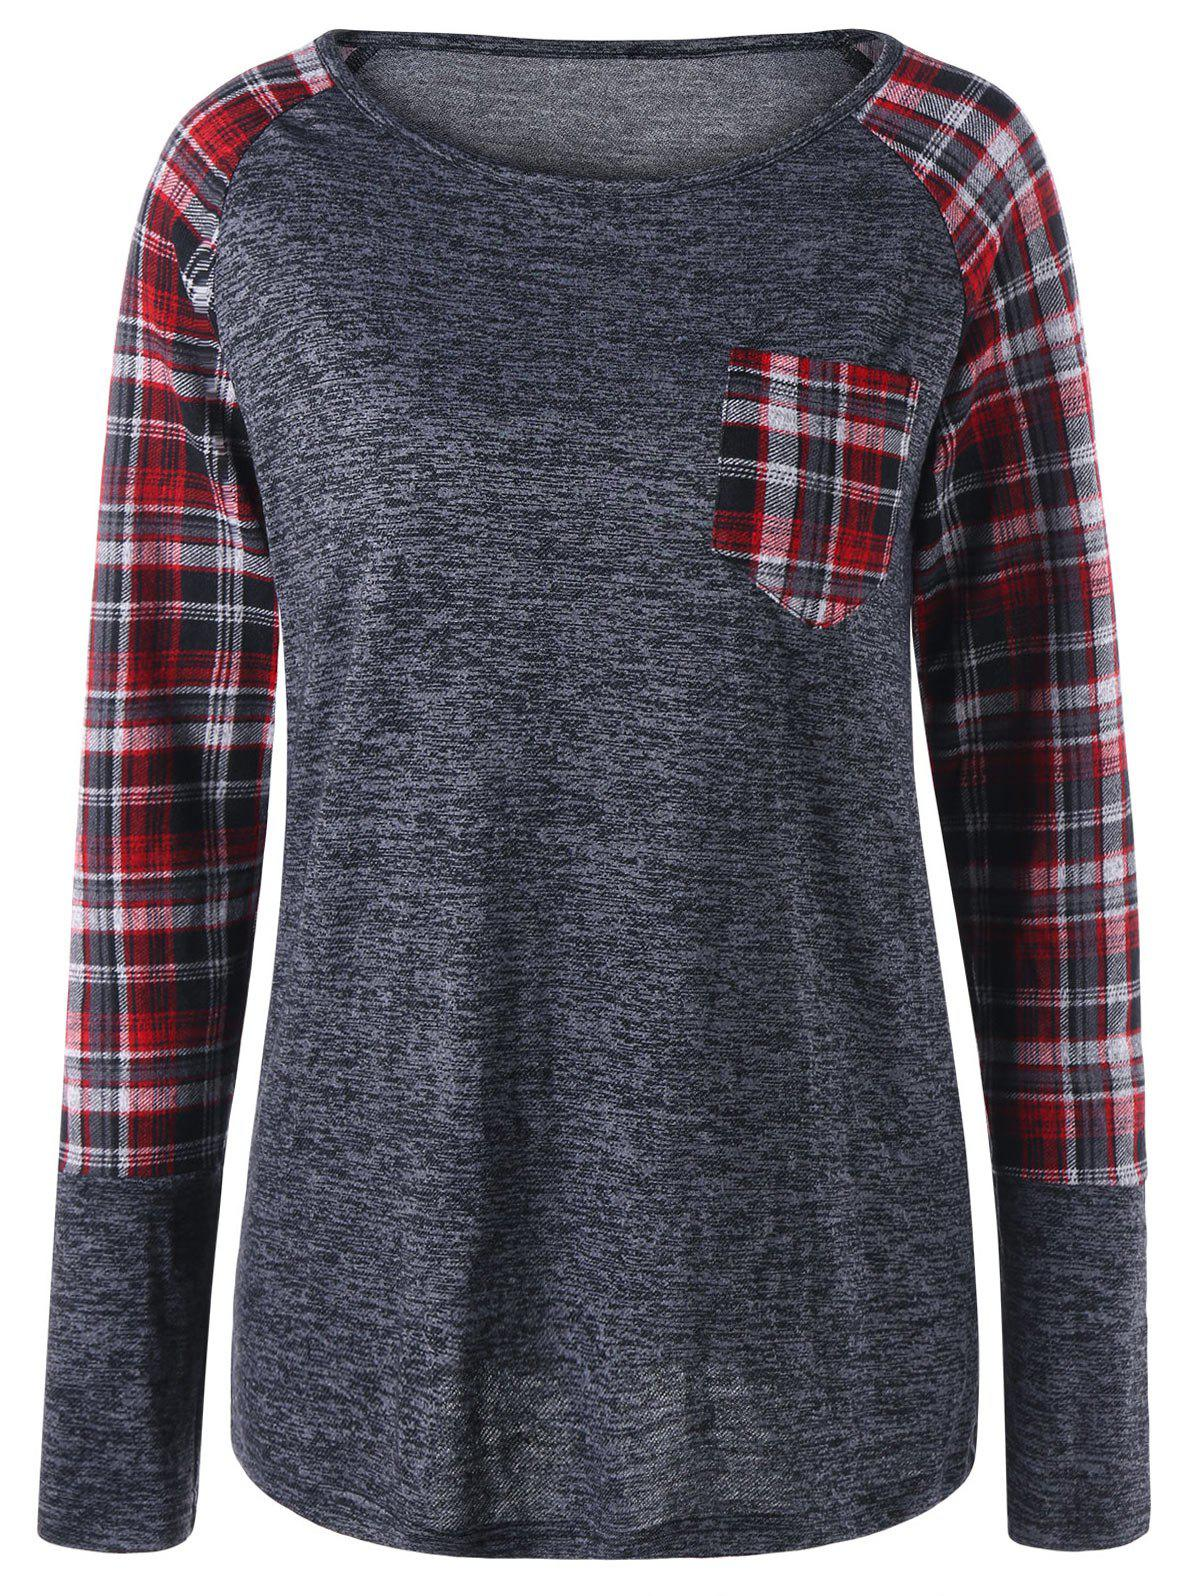 Patch Pocket Raglan Sleeve Plaid Top - GRAY 2XL